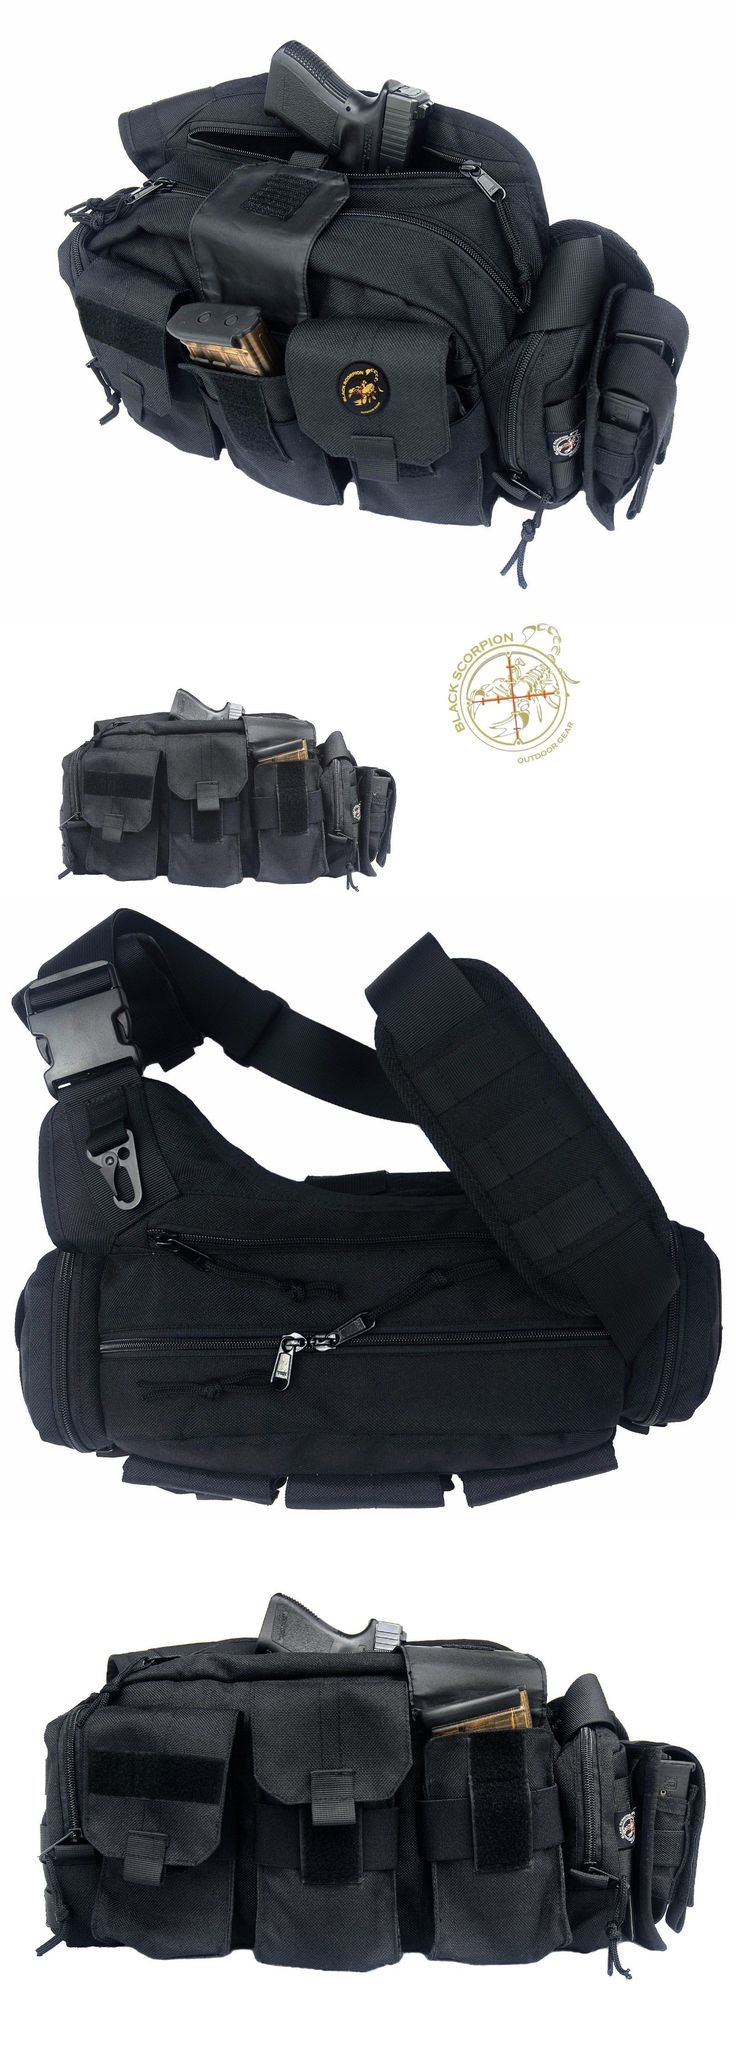 Tactical Bags and Packs 177899: Punisher Response Tactical Bag (Bail Out Bag ) Concealed Weapon Black Scorpion -> BUY IT NOW ONLY: $33.99 on eBay!